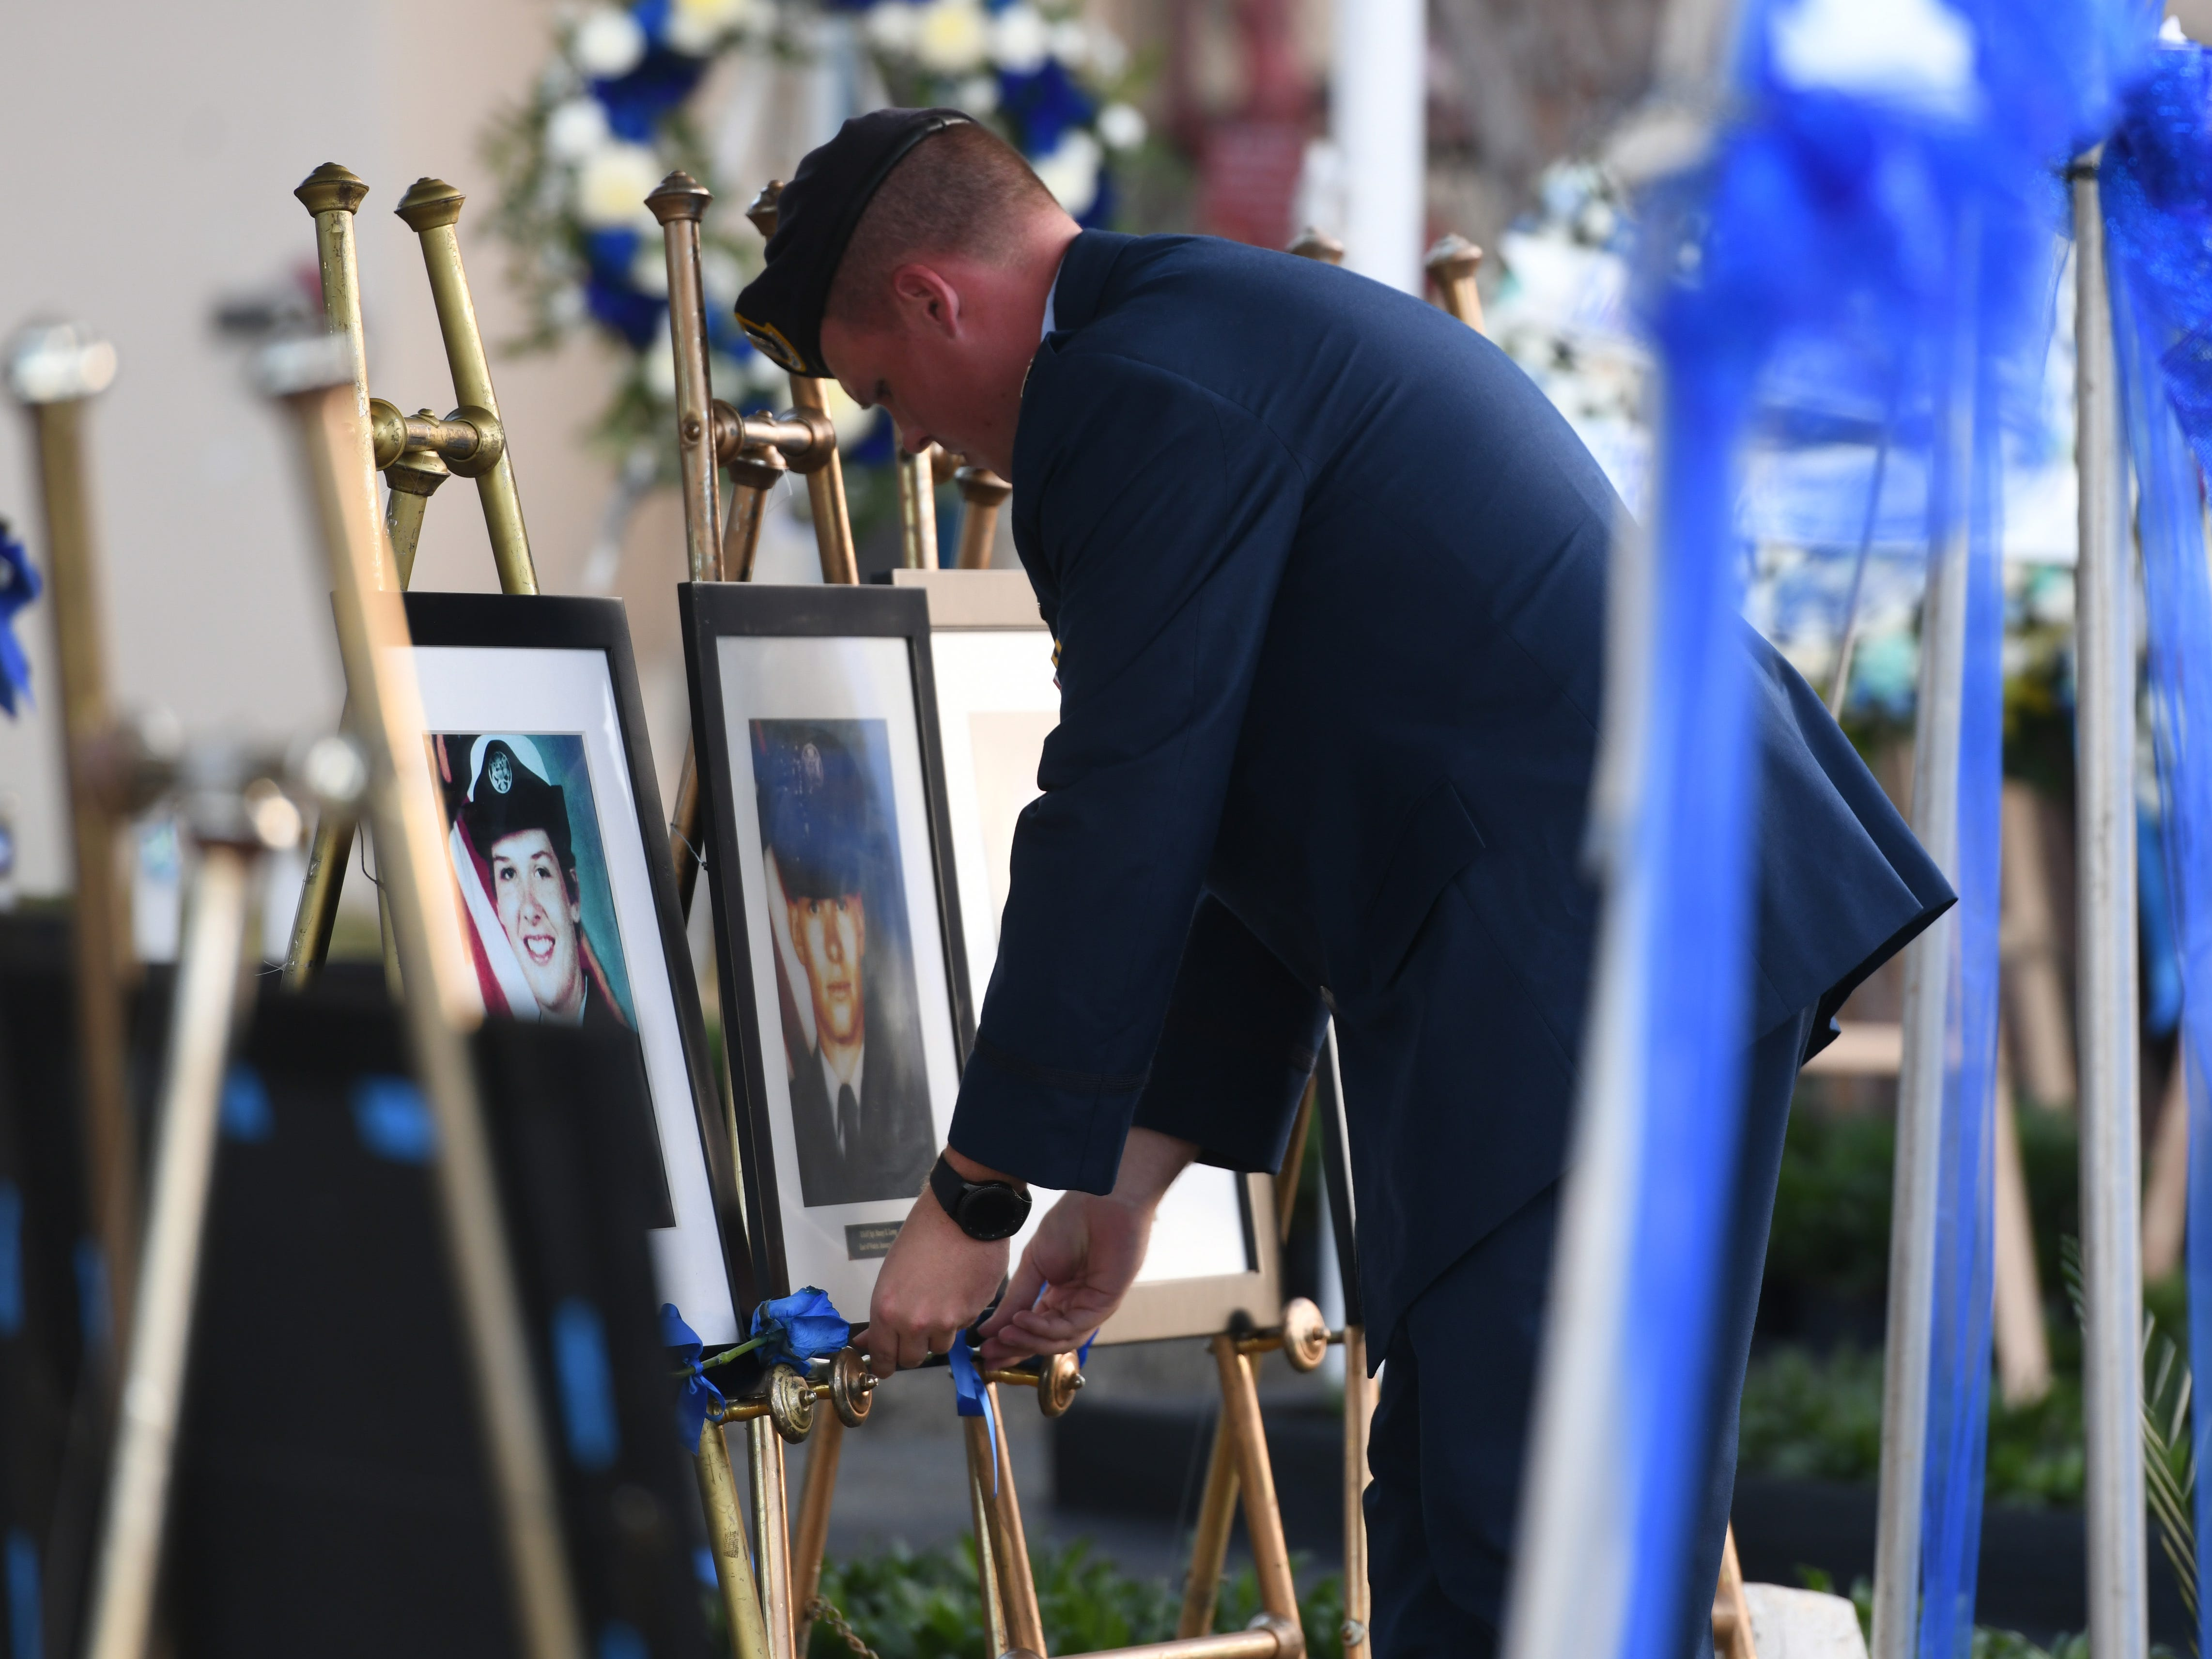 The service of U.S. Air Force Sgt. Stacey Levay is remembered during the Peace Officers' Memorial Service and Wreath Laying Ceremony held at the Guam Police Department's Badge Memorial Park in Hagåtña on Wednesday, May 15, 2019.